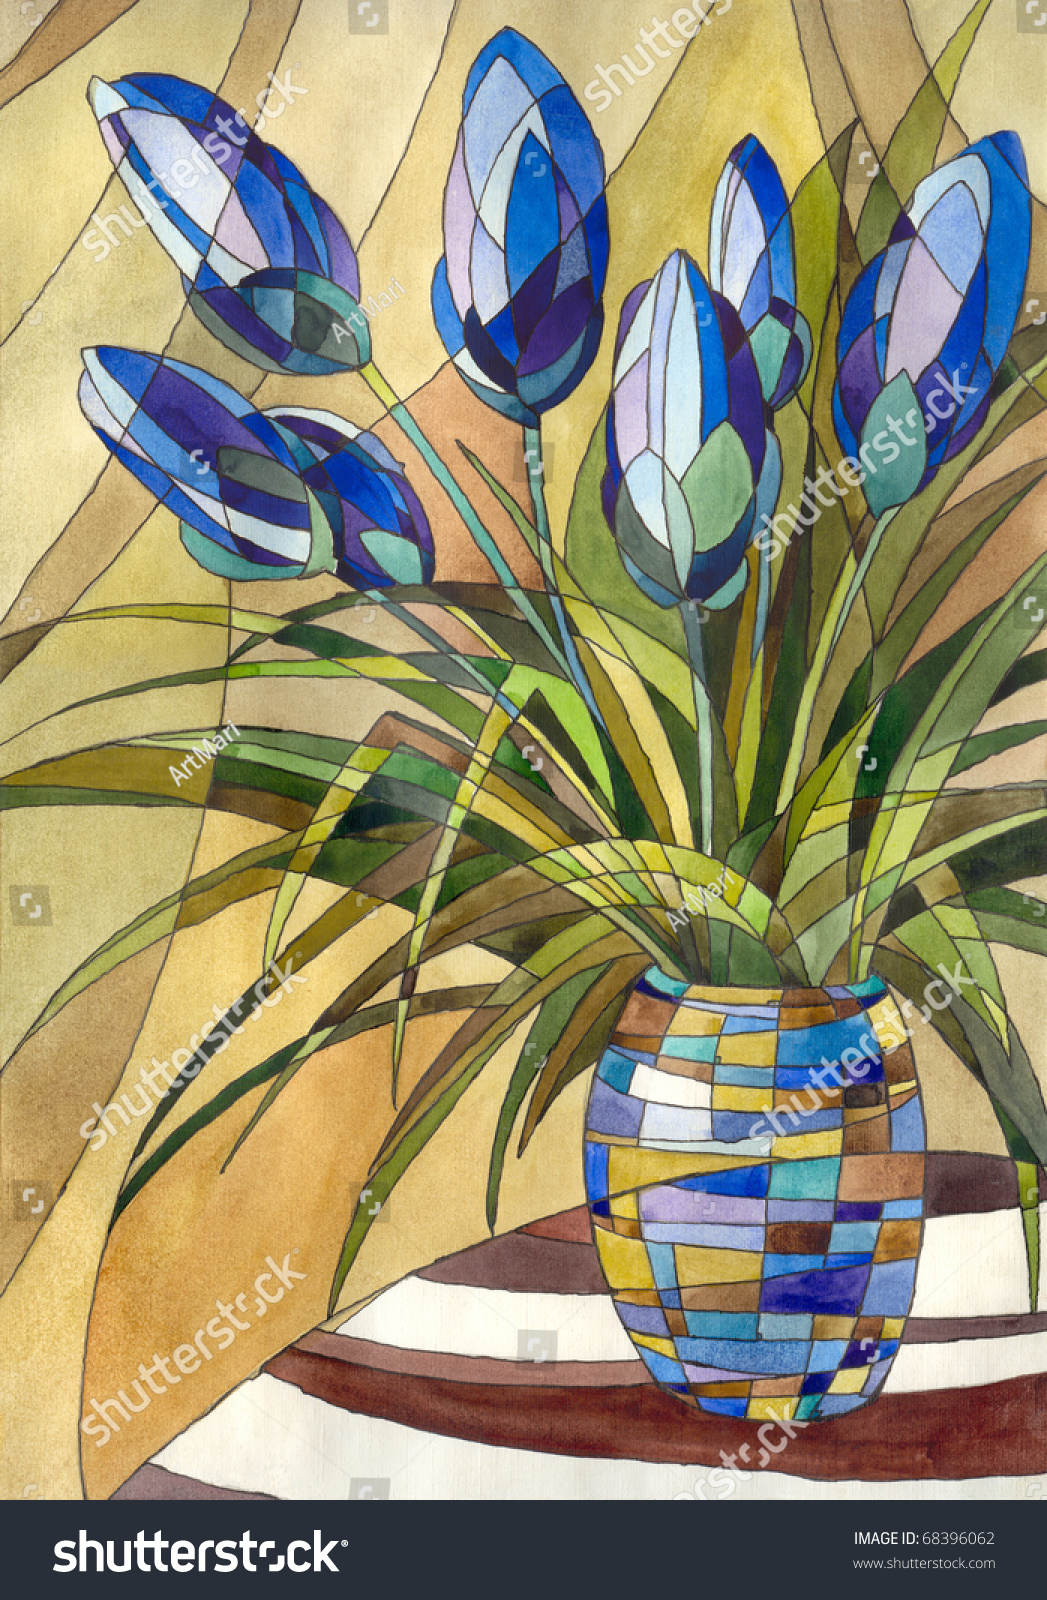 decorative painting abstract flowers in a vase with geometric pattern - Decorative Painting